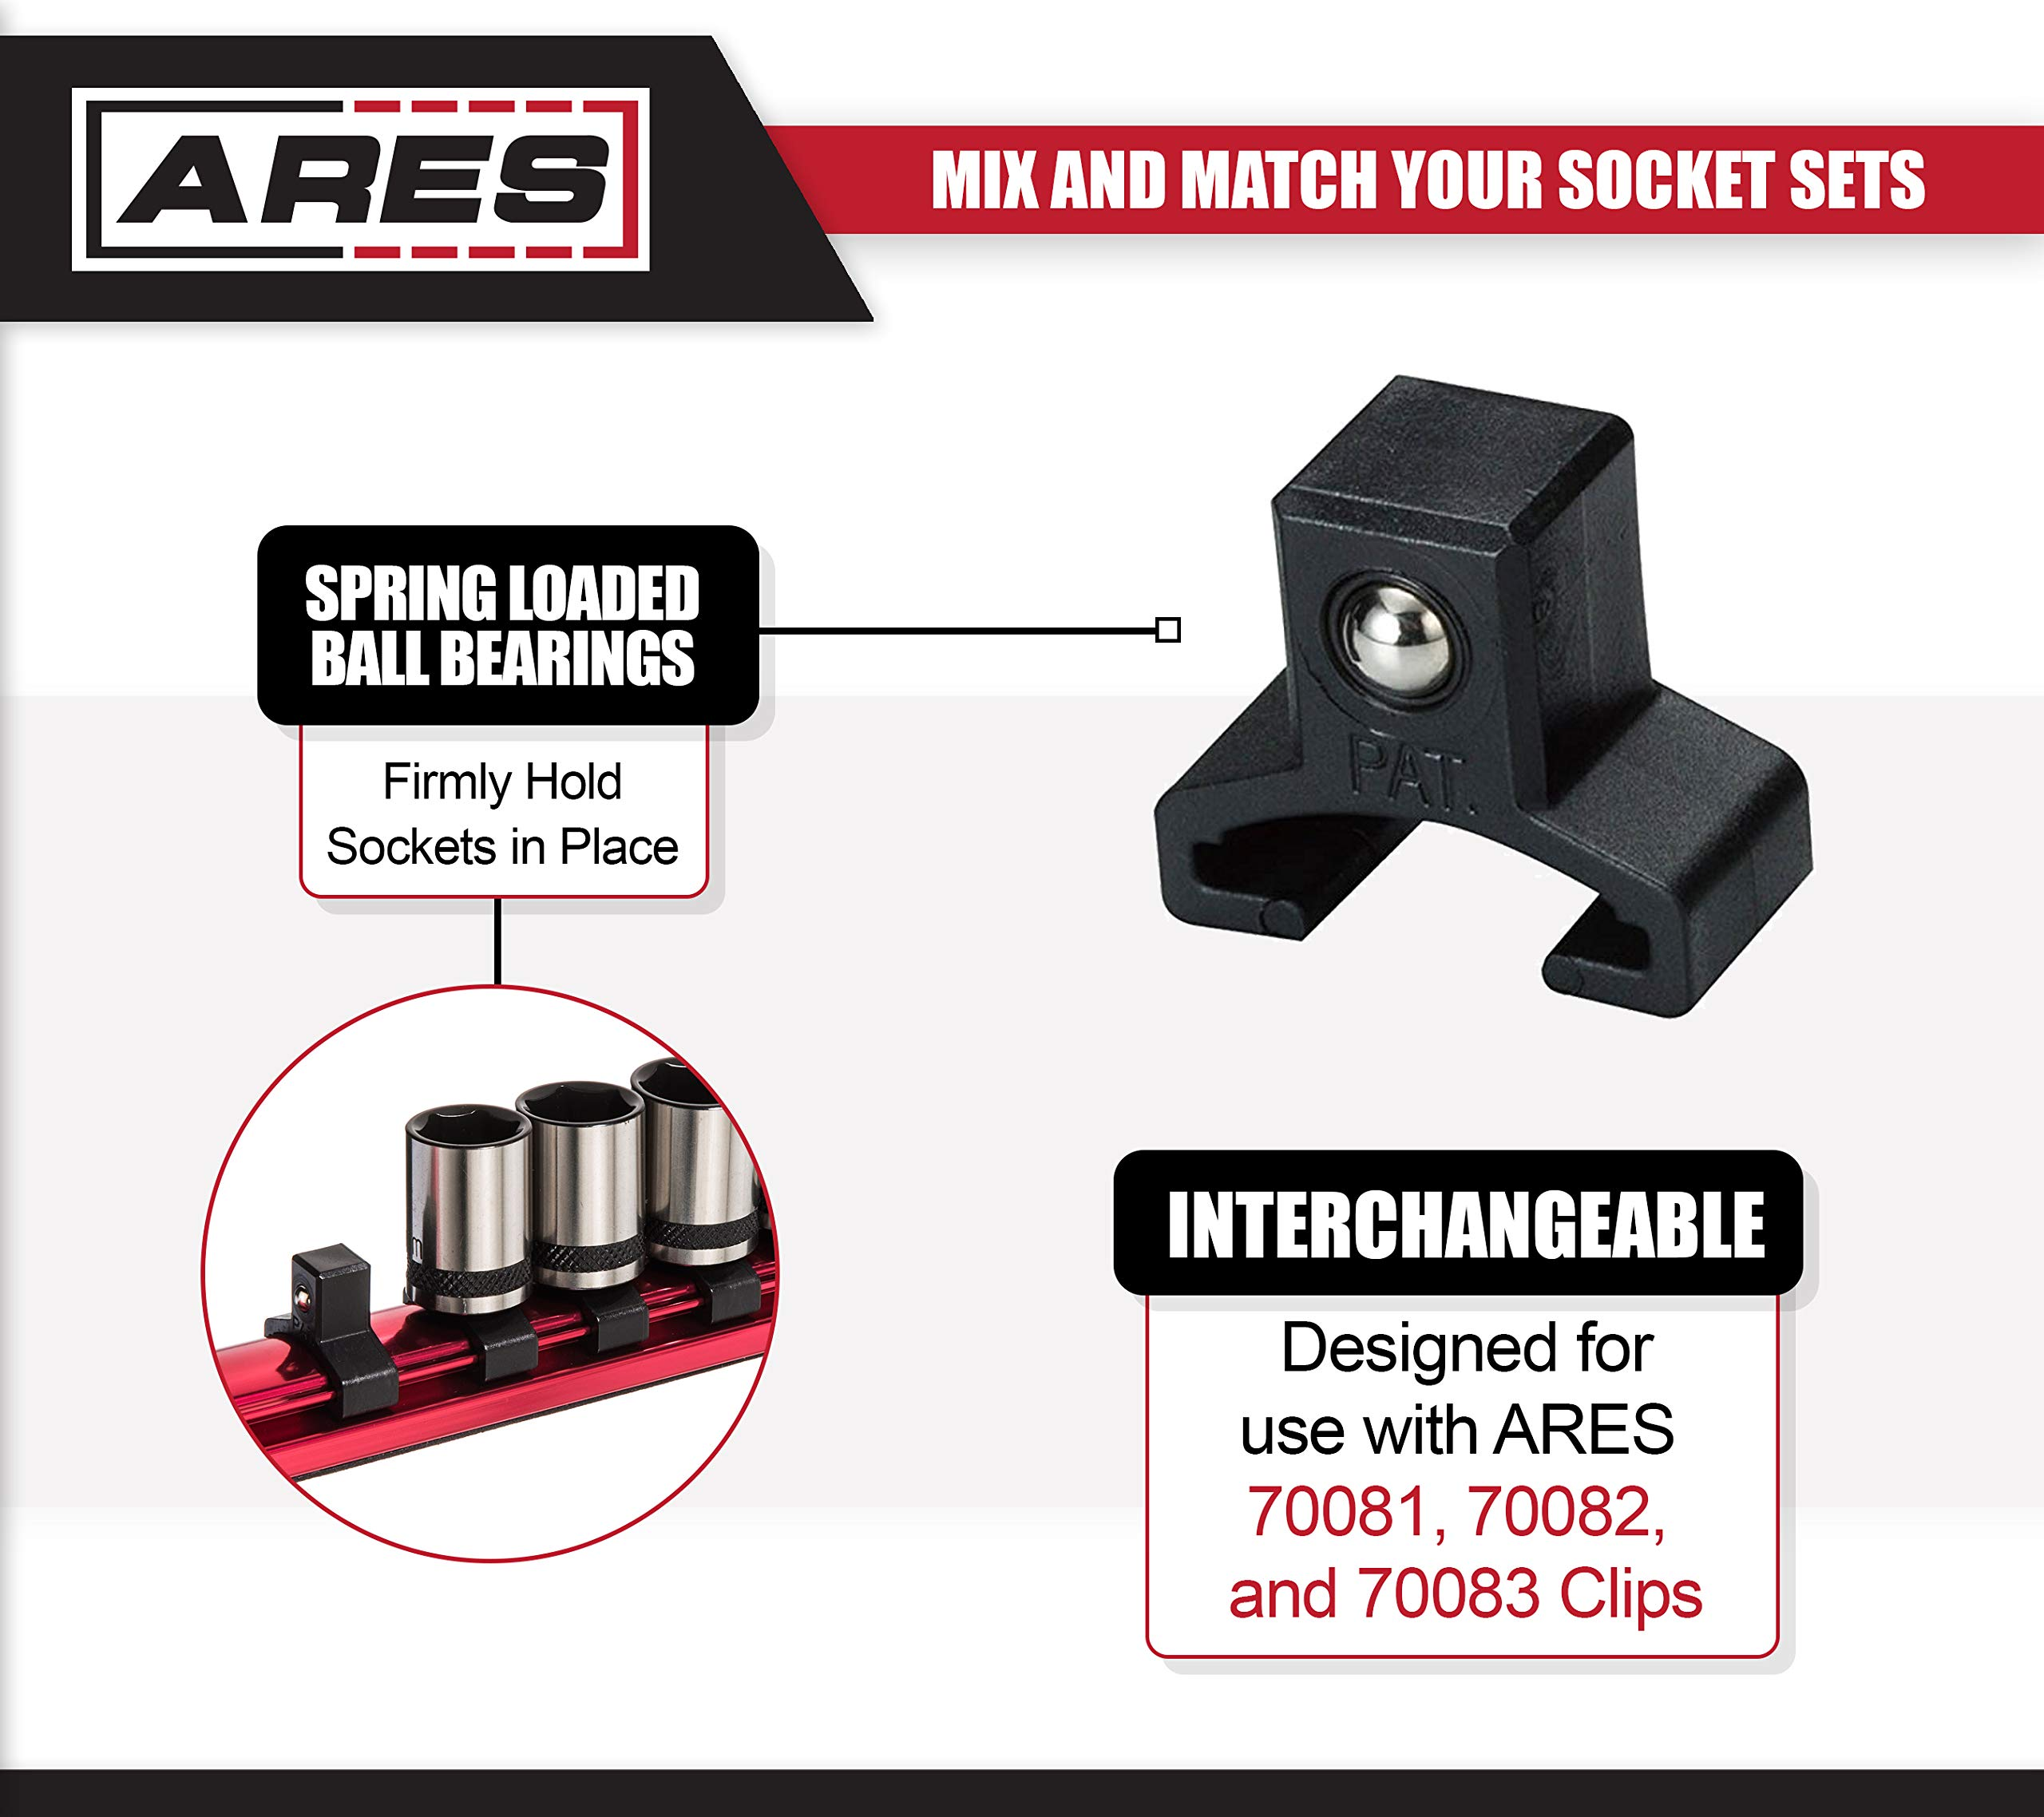 ARES 71181 | 3/8-Inch Drive Magnetic Socket Organizer | Aluminum Rail Stores up to 12 Sockets and Keeps Your Tool Box Organized by ARES (Image #3)